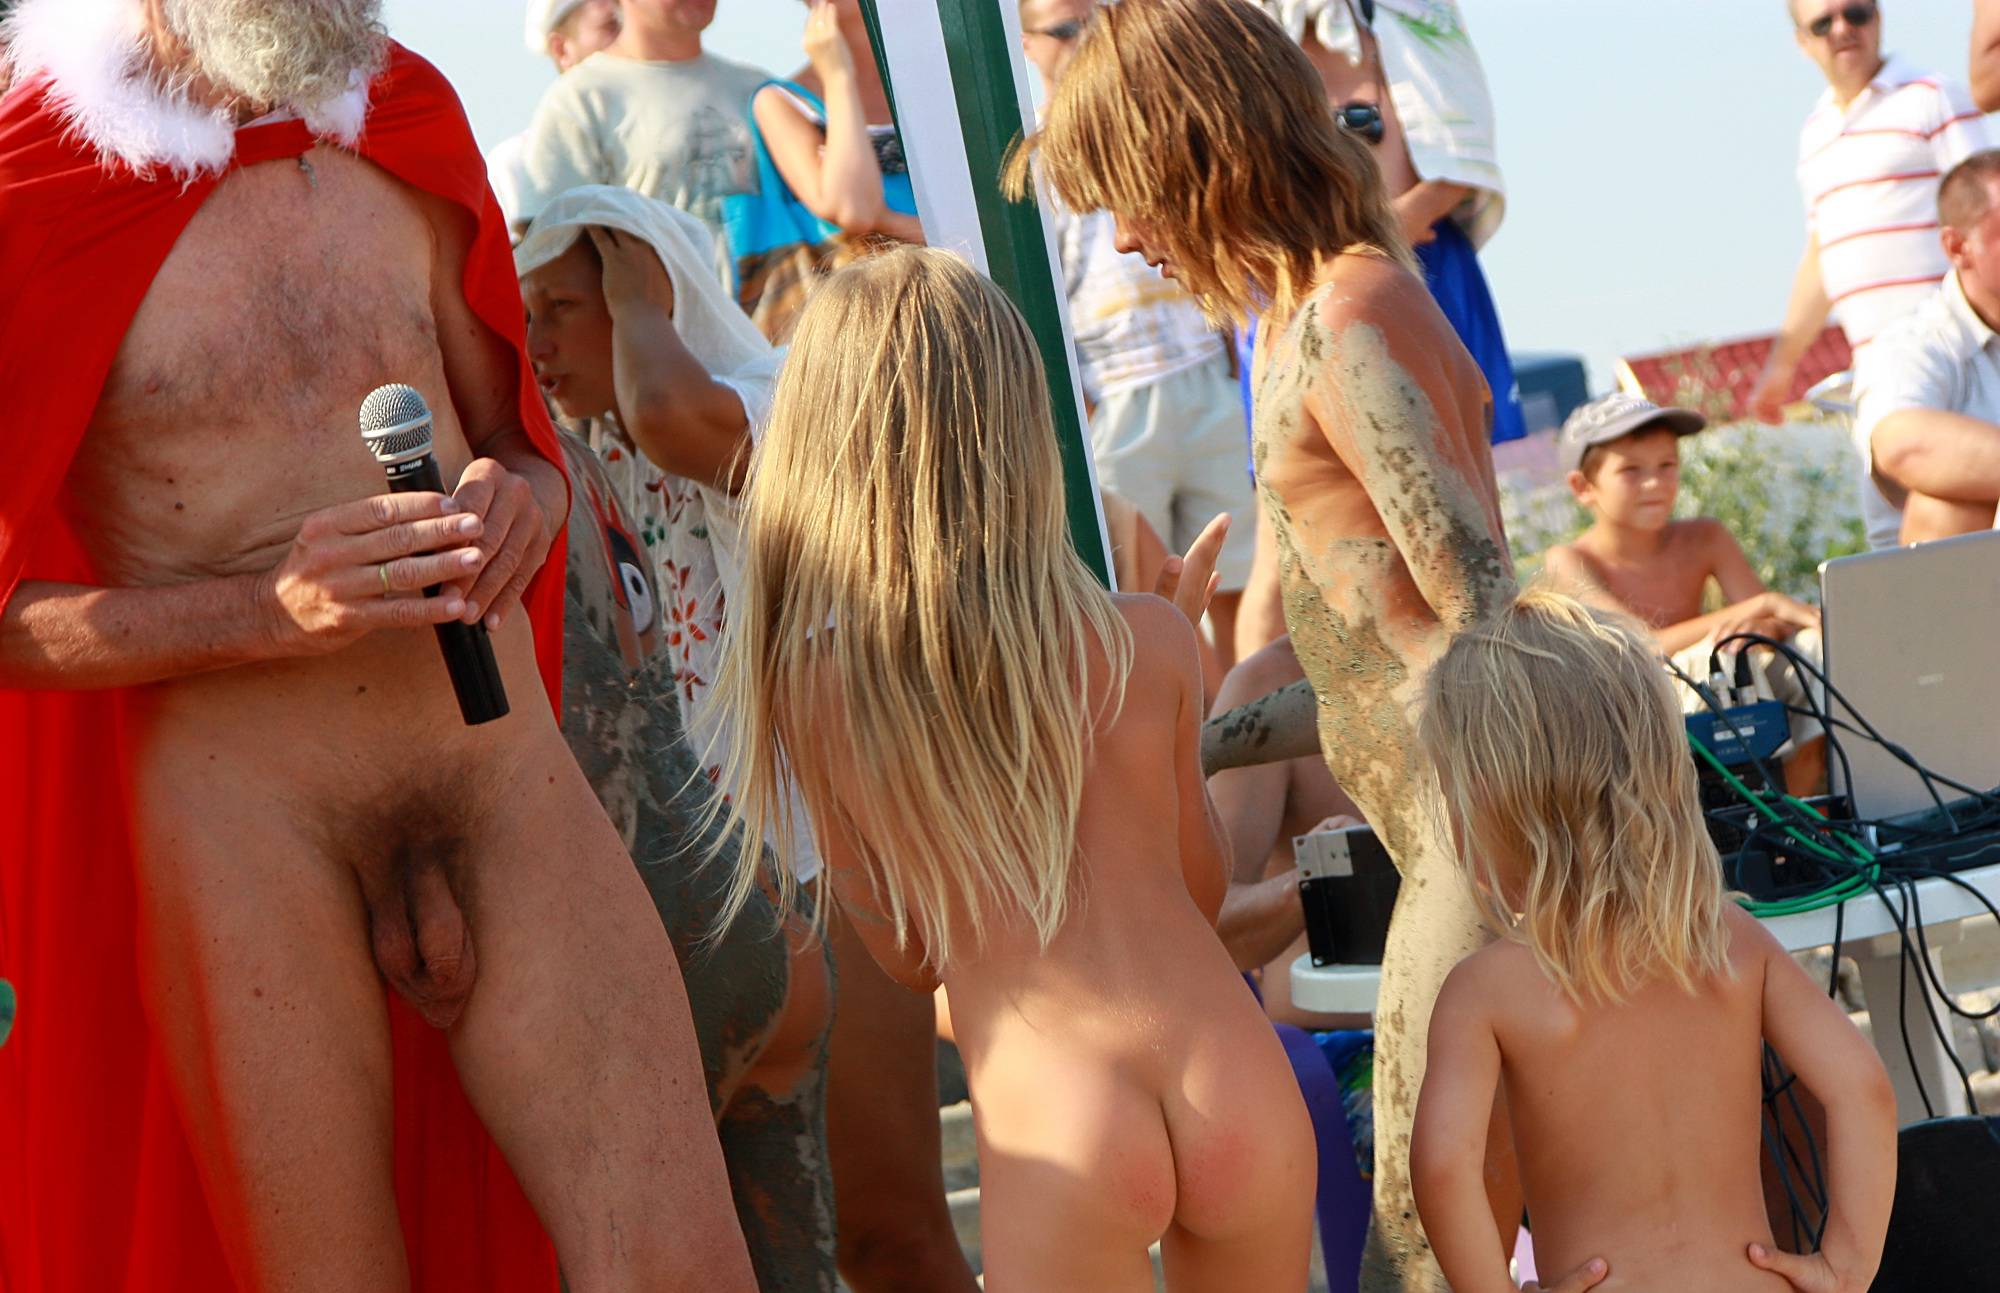 Nudist Photos Staying In A Cool Shade - 2